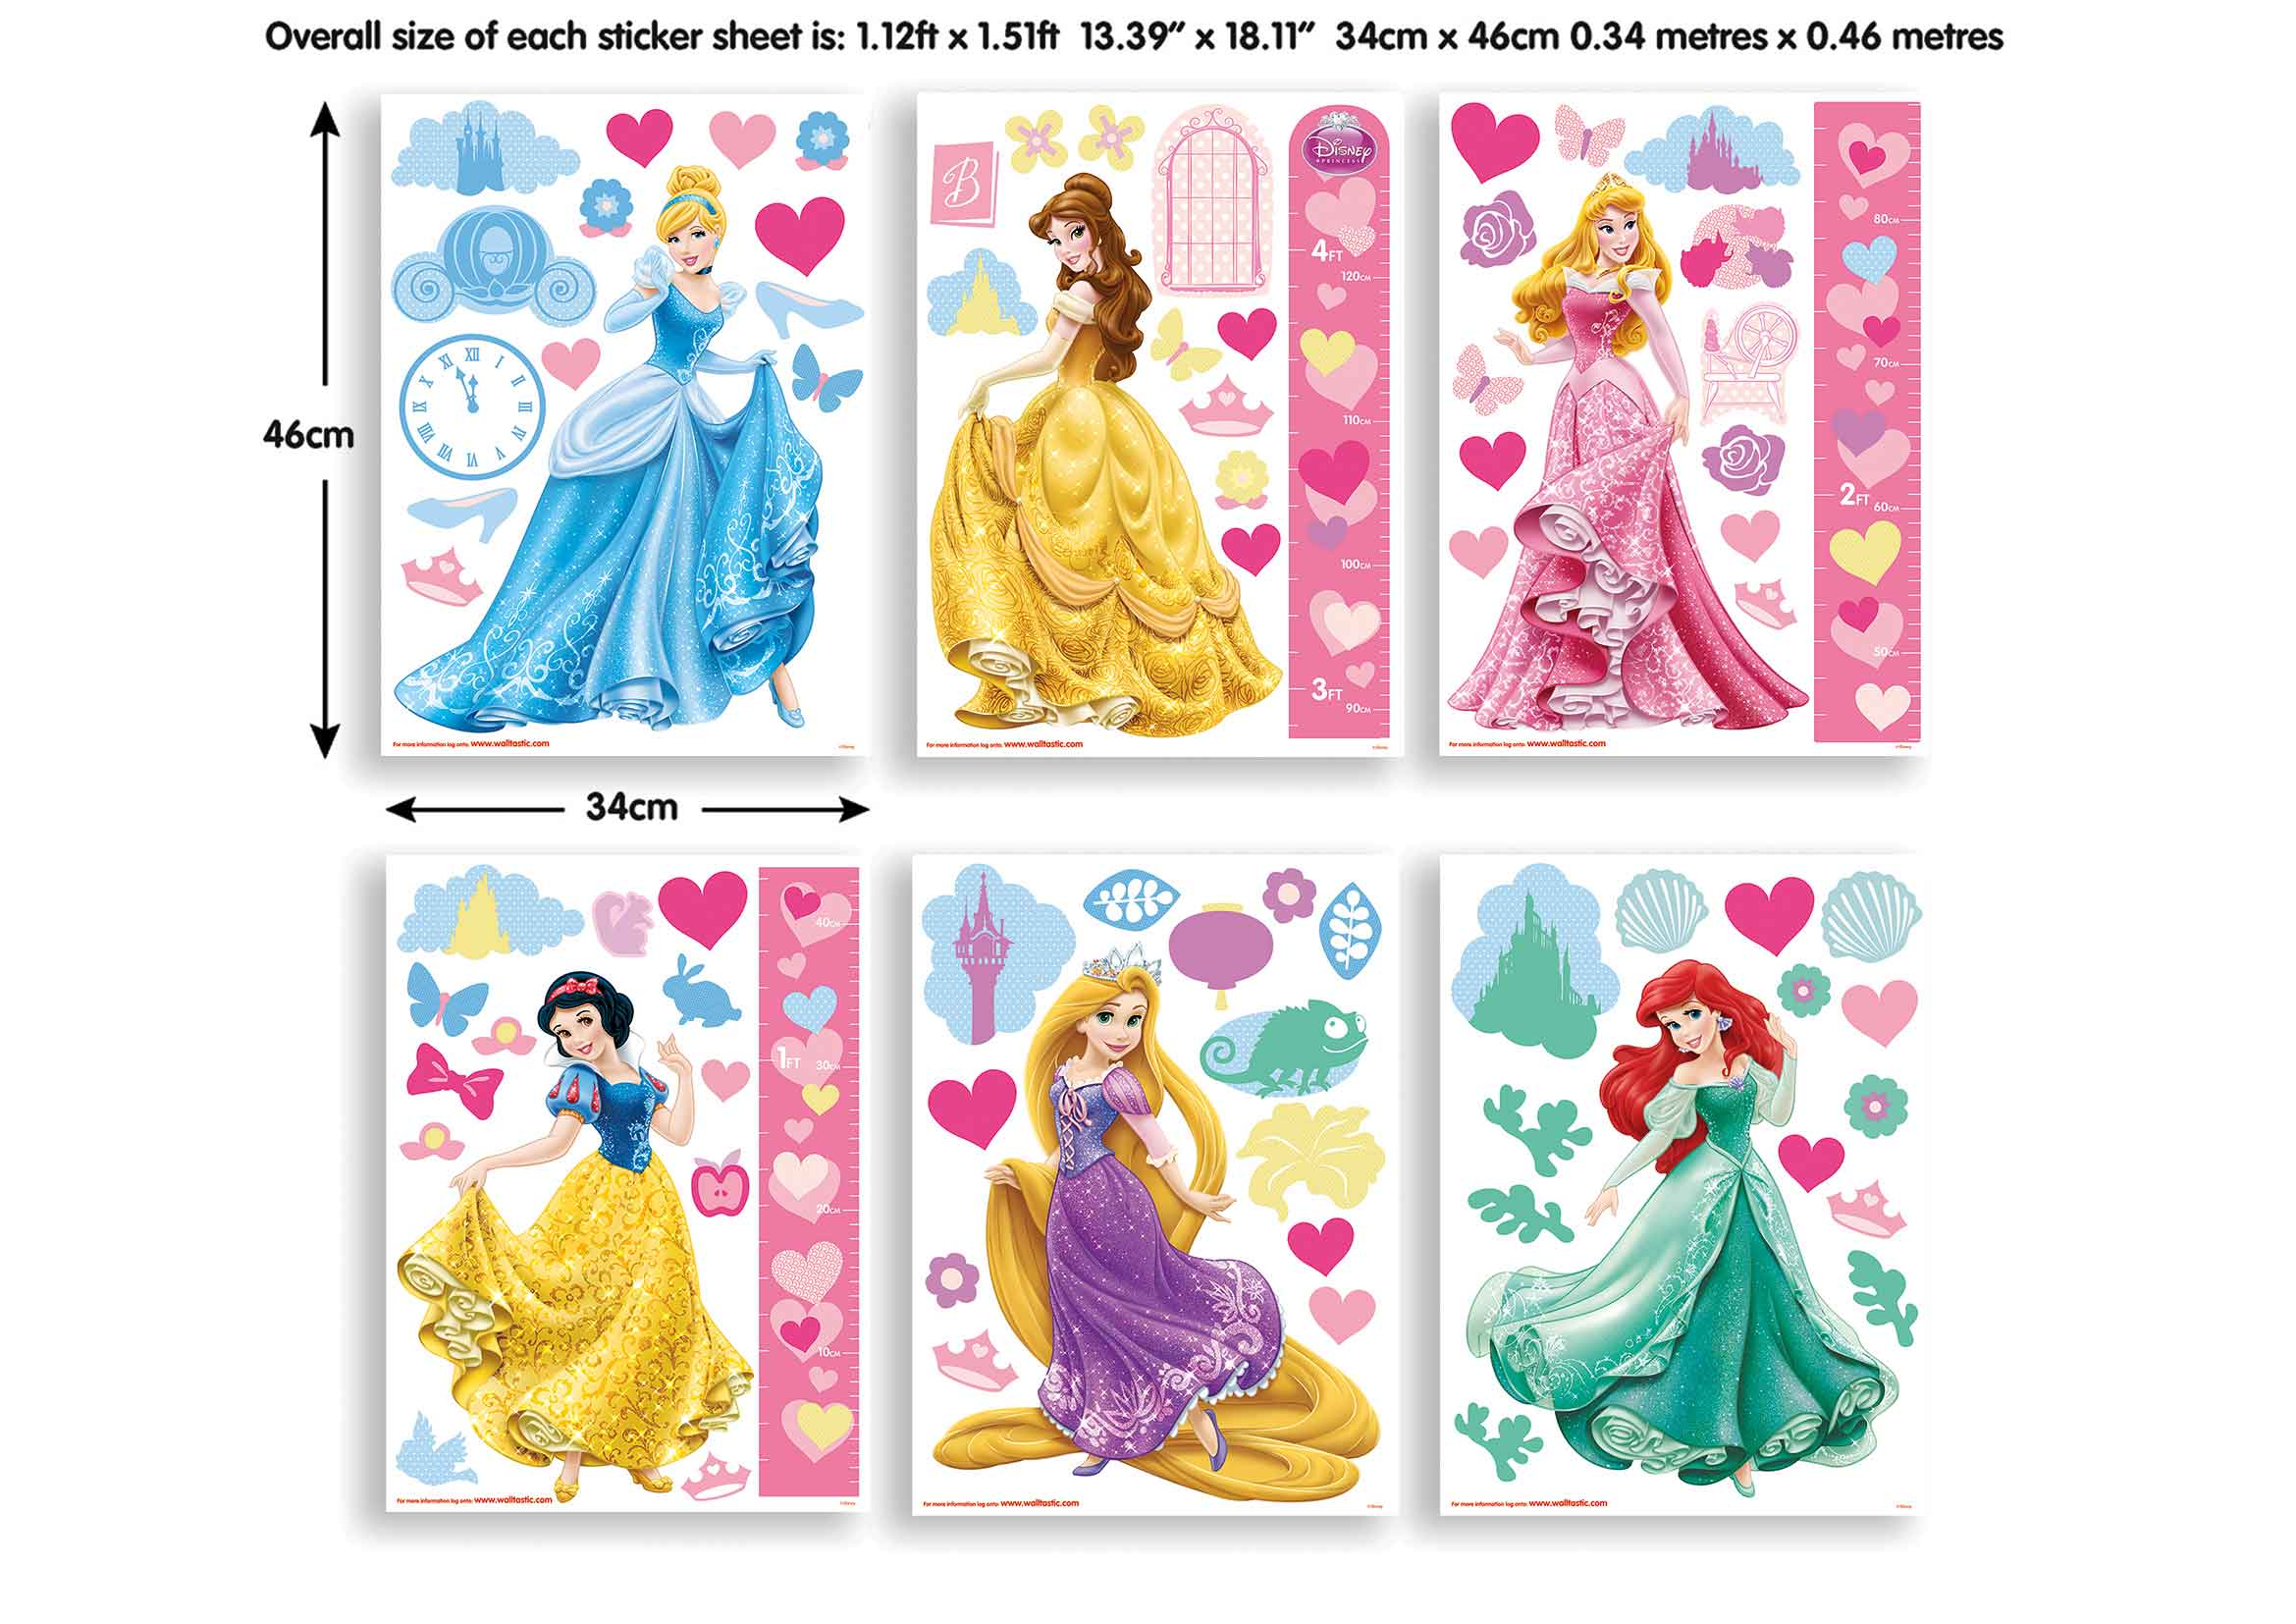 Walltastic wandsticker kinderzimmer disney princess www 4 - Wandtattoo kinderzimmer disney ...